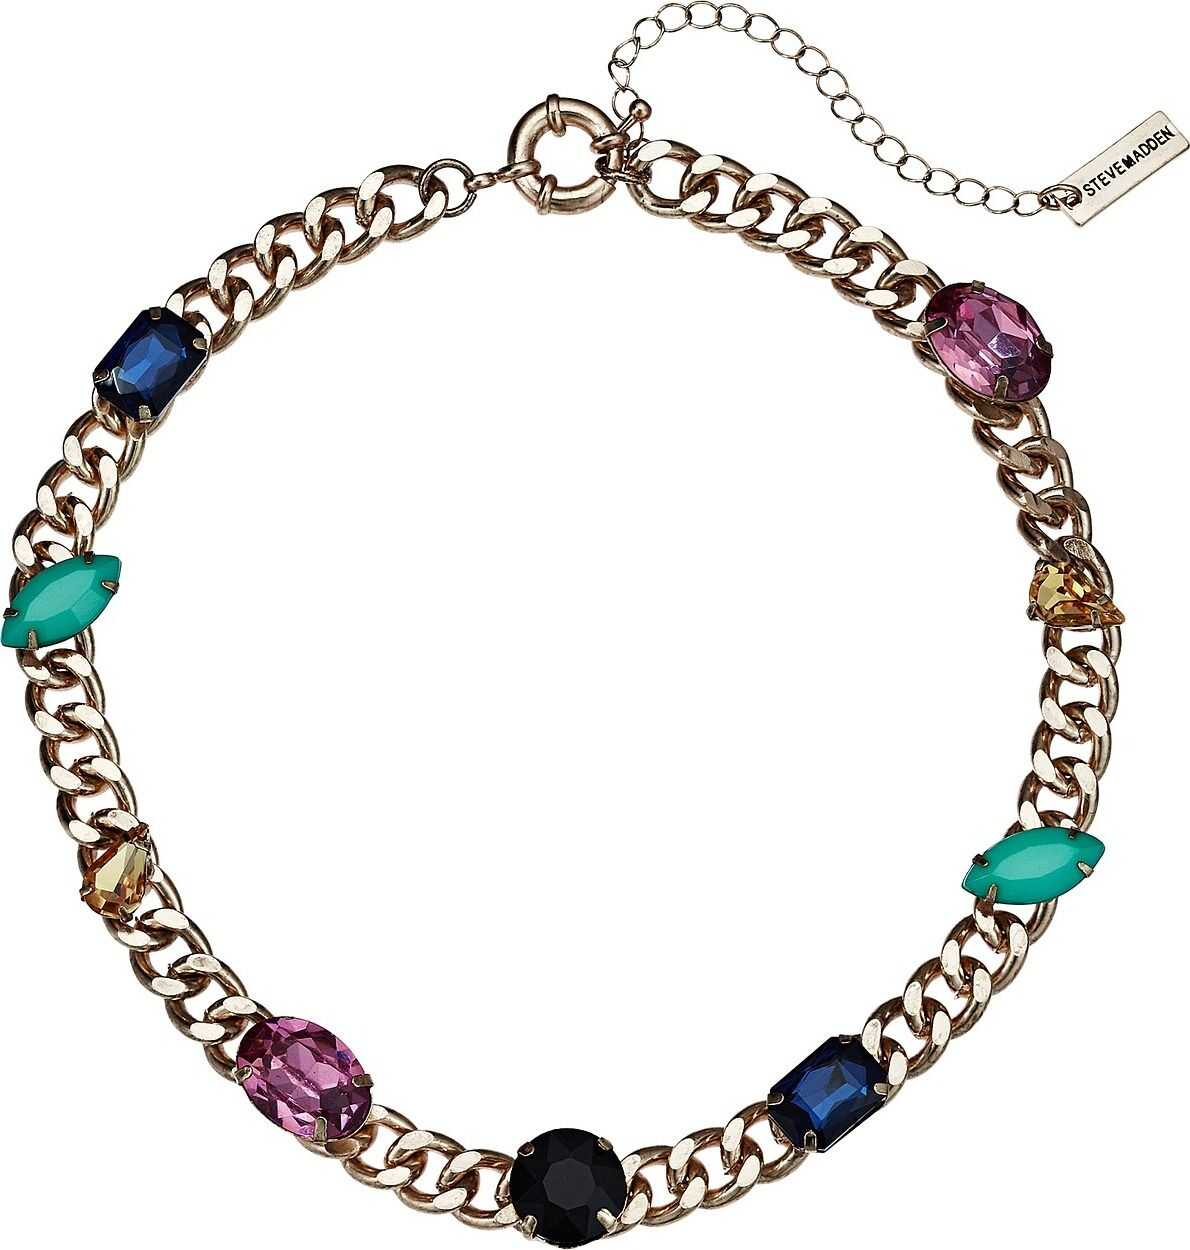 Steve Madden Jewel Design Collar Necklace Multicolor/Yellow Gold-Tone